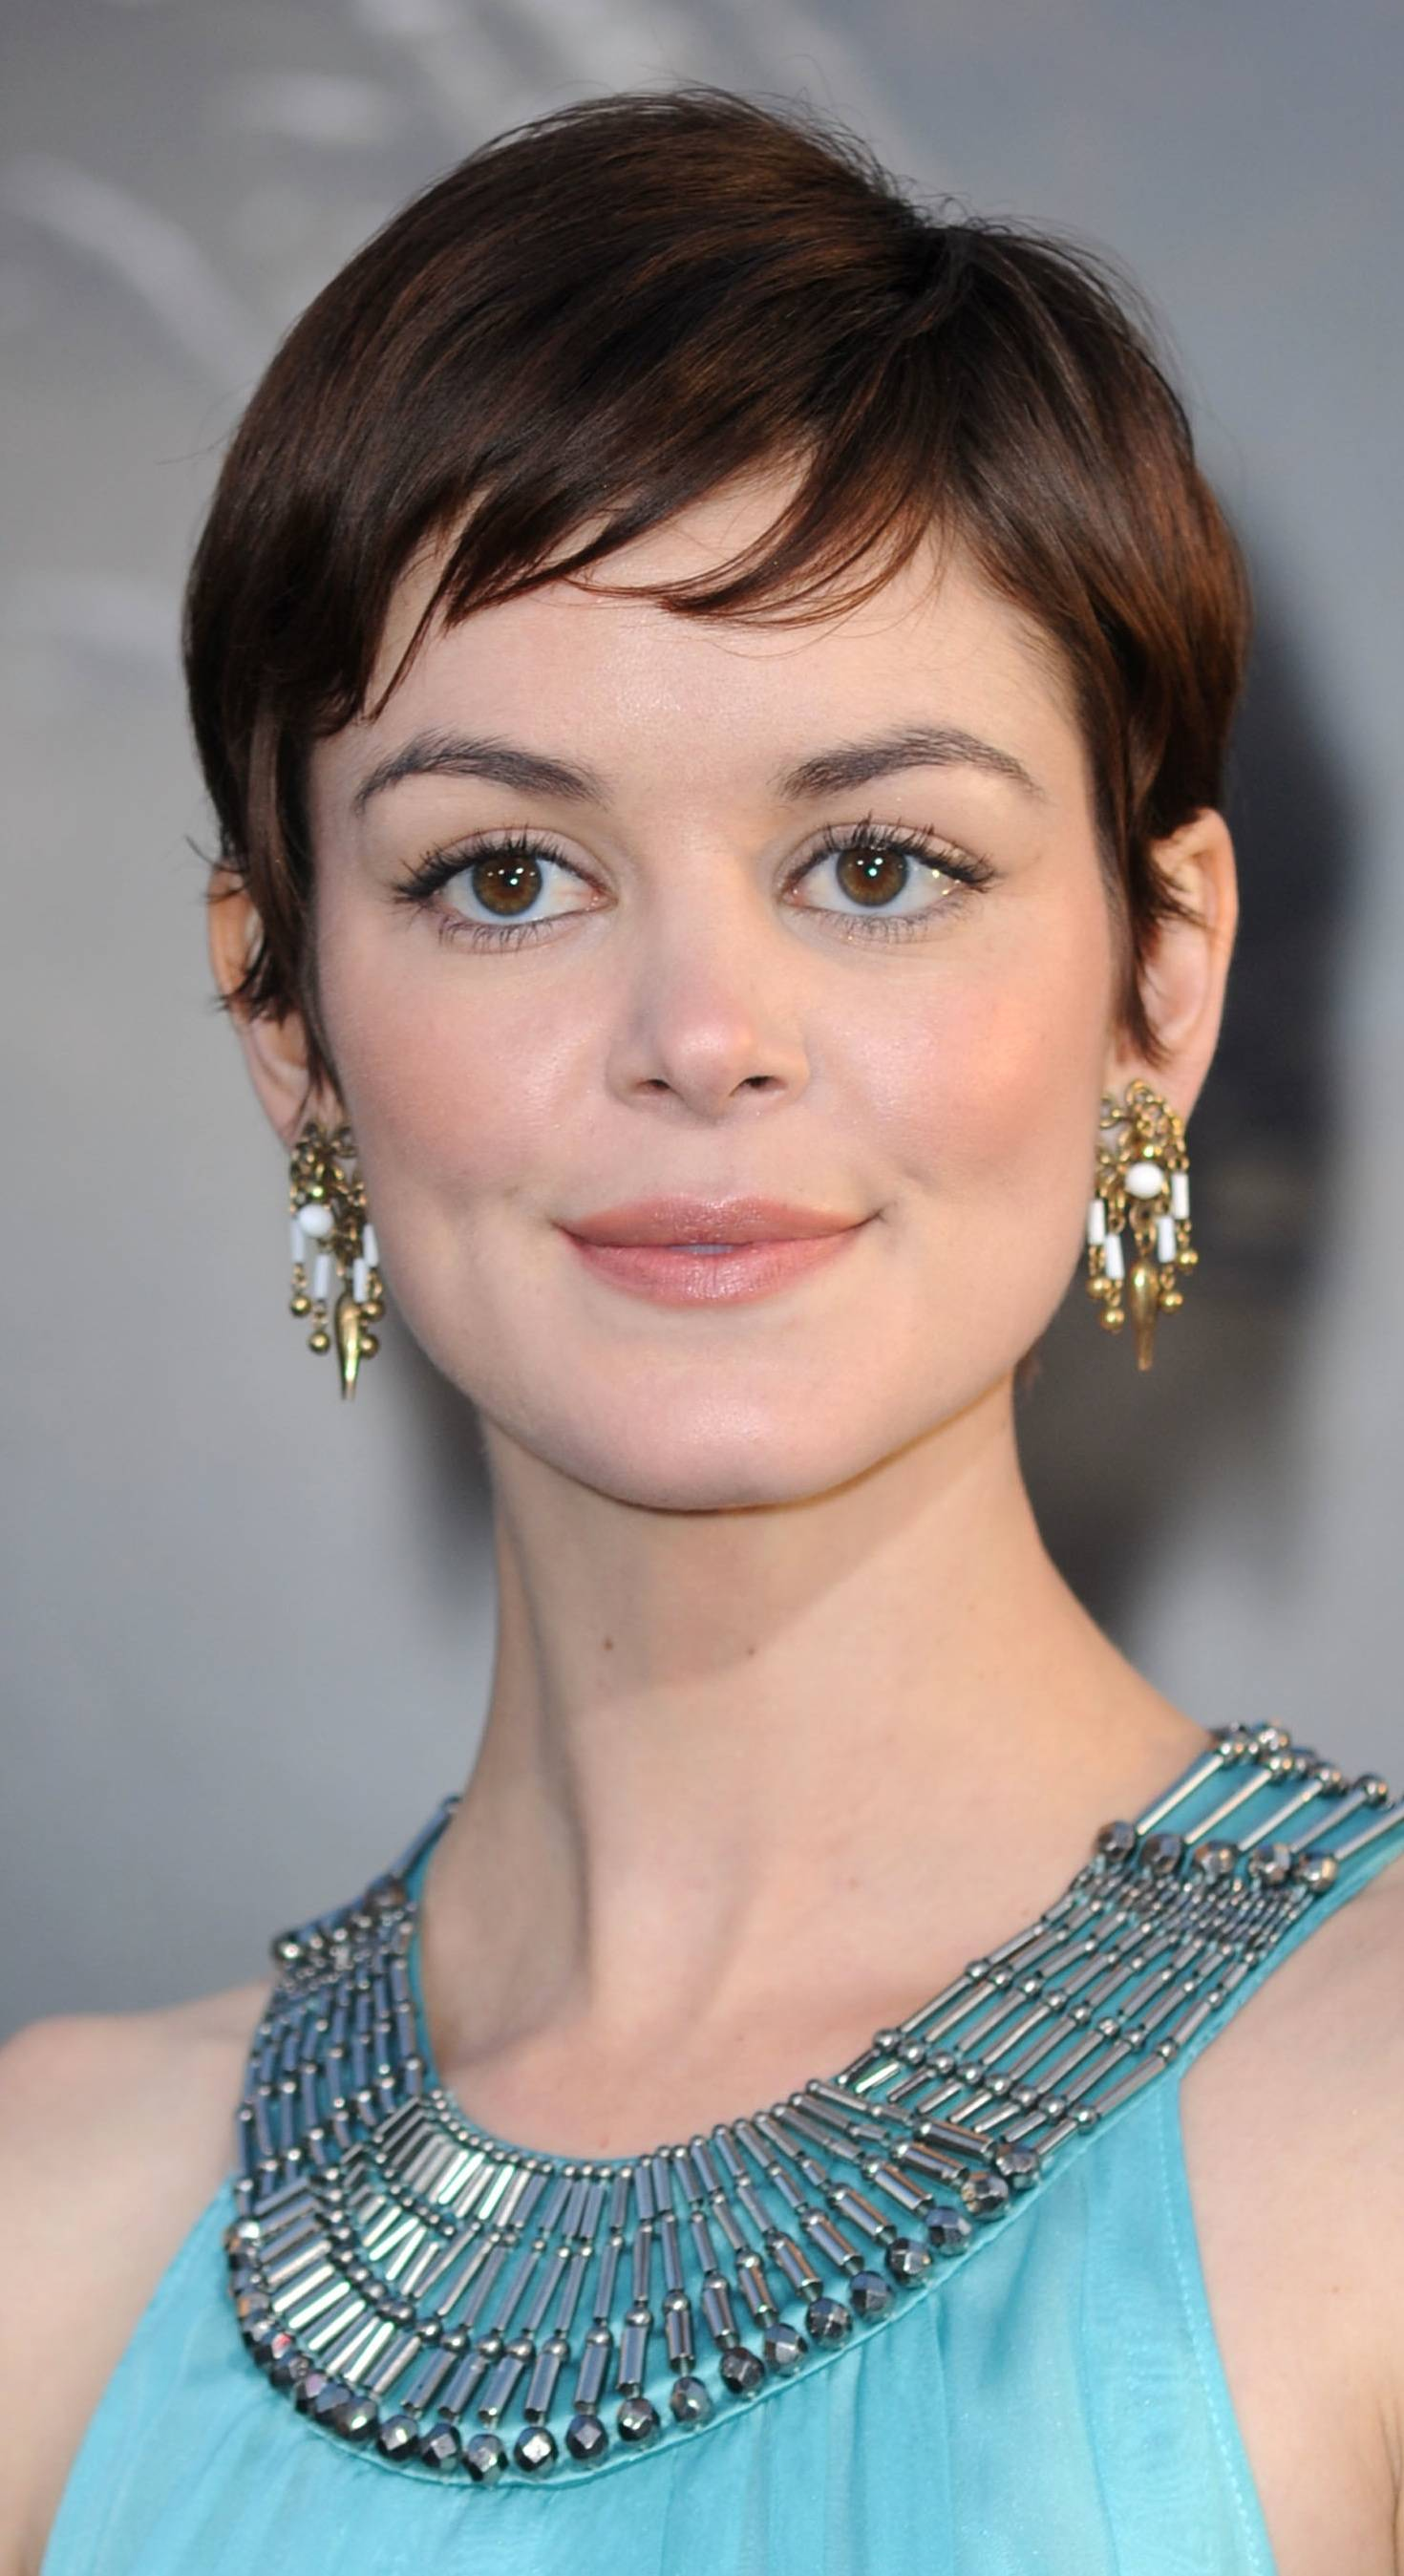 Brown Short Pixie Haircut With Side Bangs Sheplanet